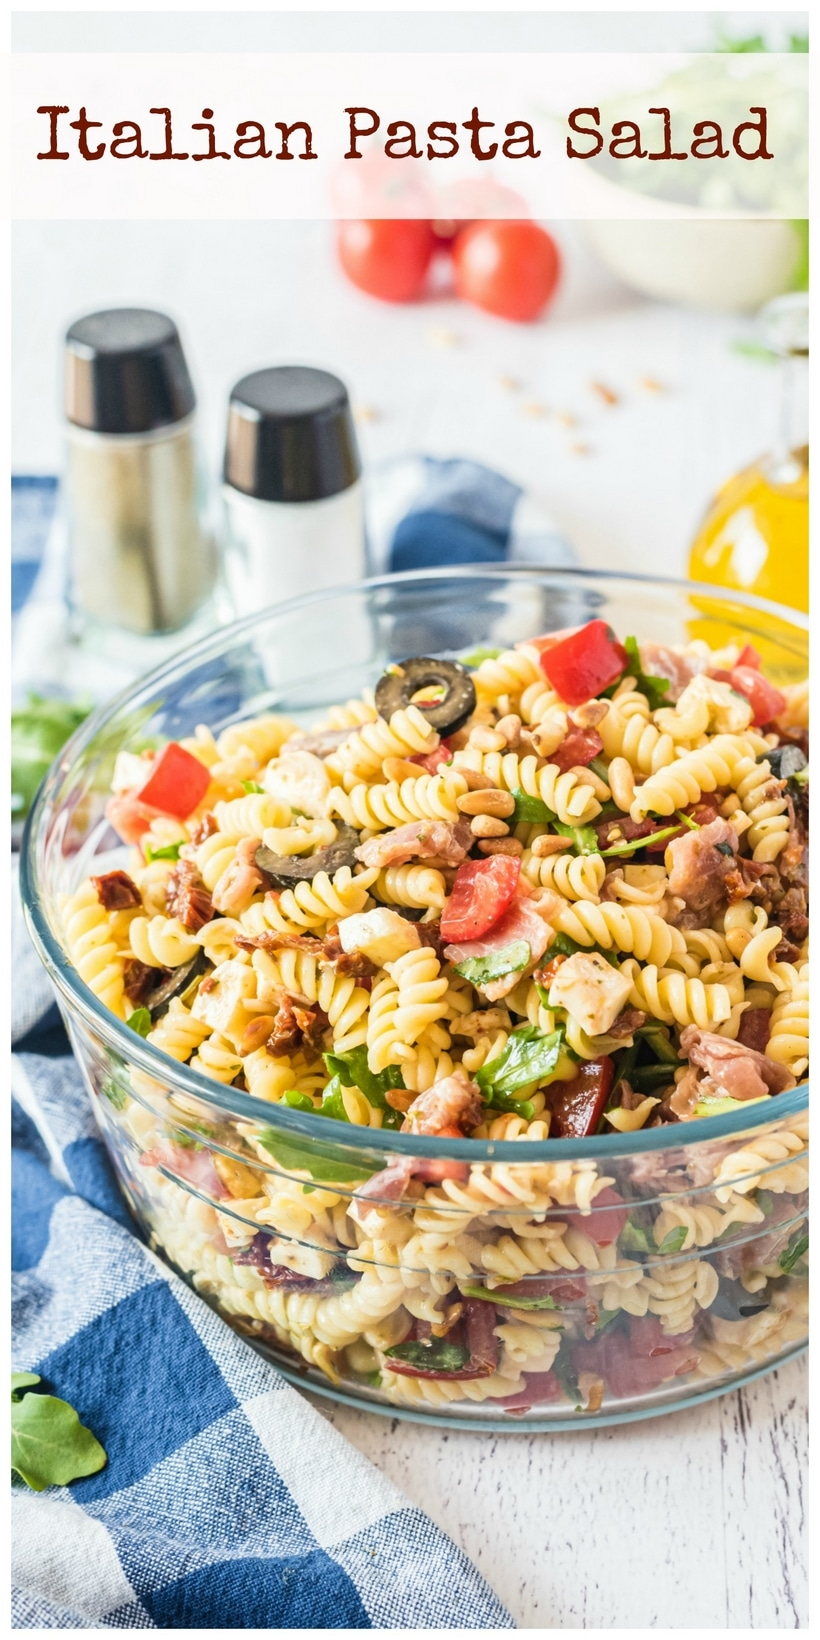 Italian Pasta Salad can't be beat when it comes time to choose a favorite cold pasta salad. Made with homemade Italian dressing, prosciutto and sun-dried tomatoes, this colorful salad is hearty enough to be a meal in itself. via @cmpollak1